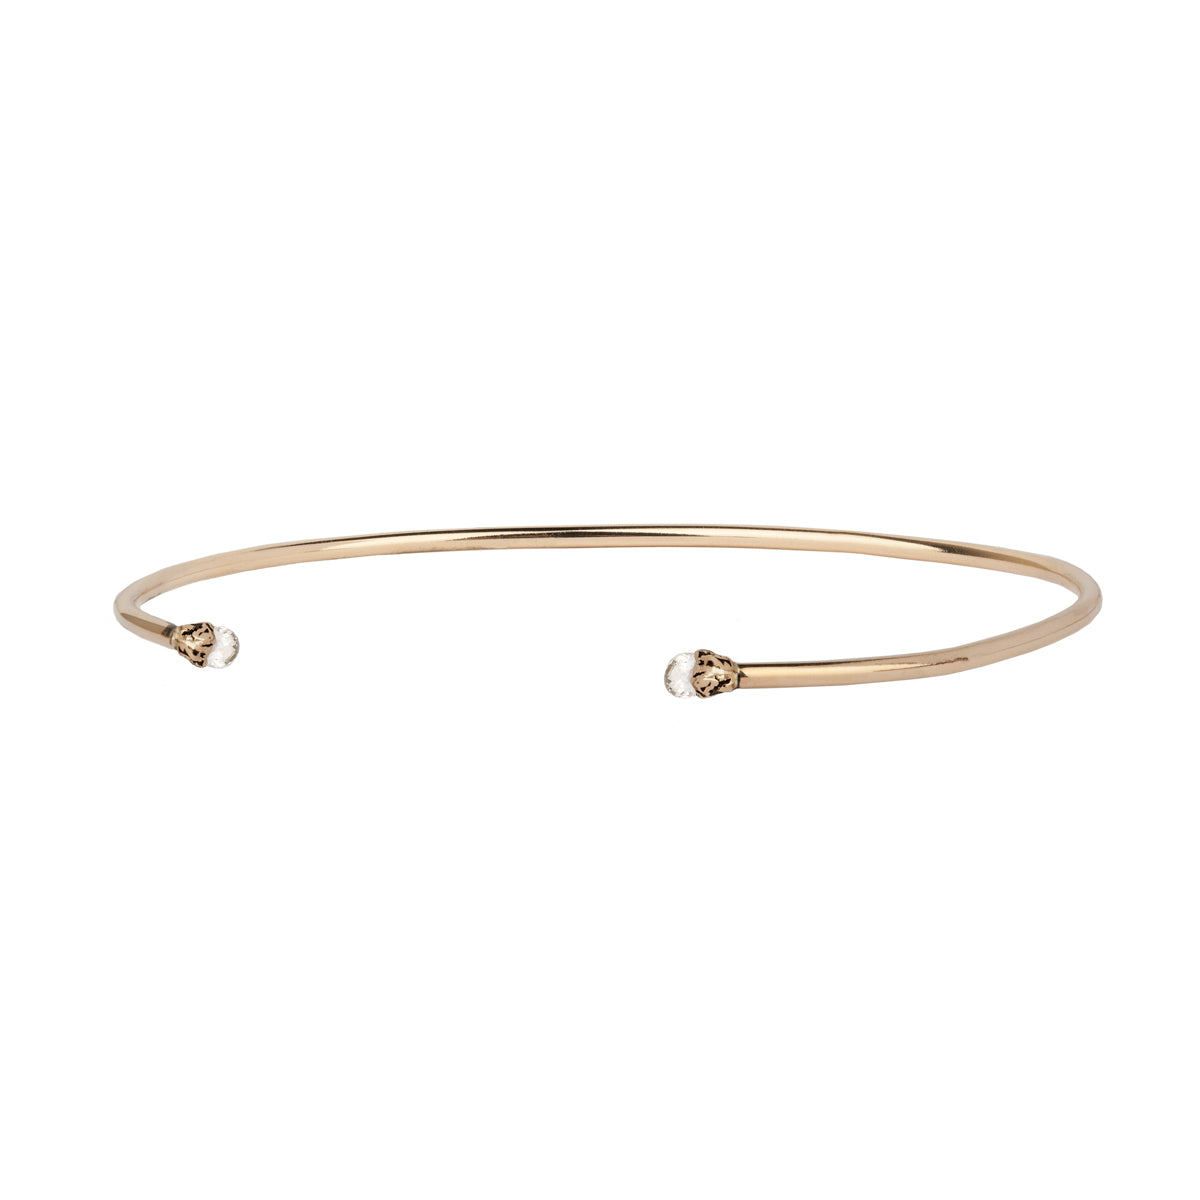 Tiny Diamond 14K Gold Capped Attraction Charm Open Bangle - pyrrha - 1